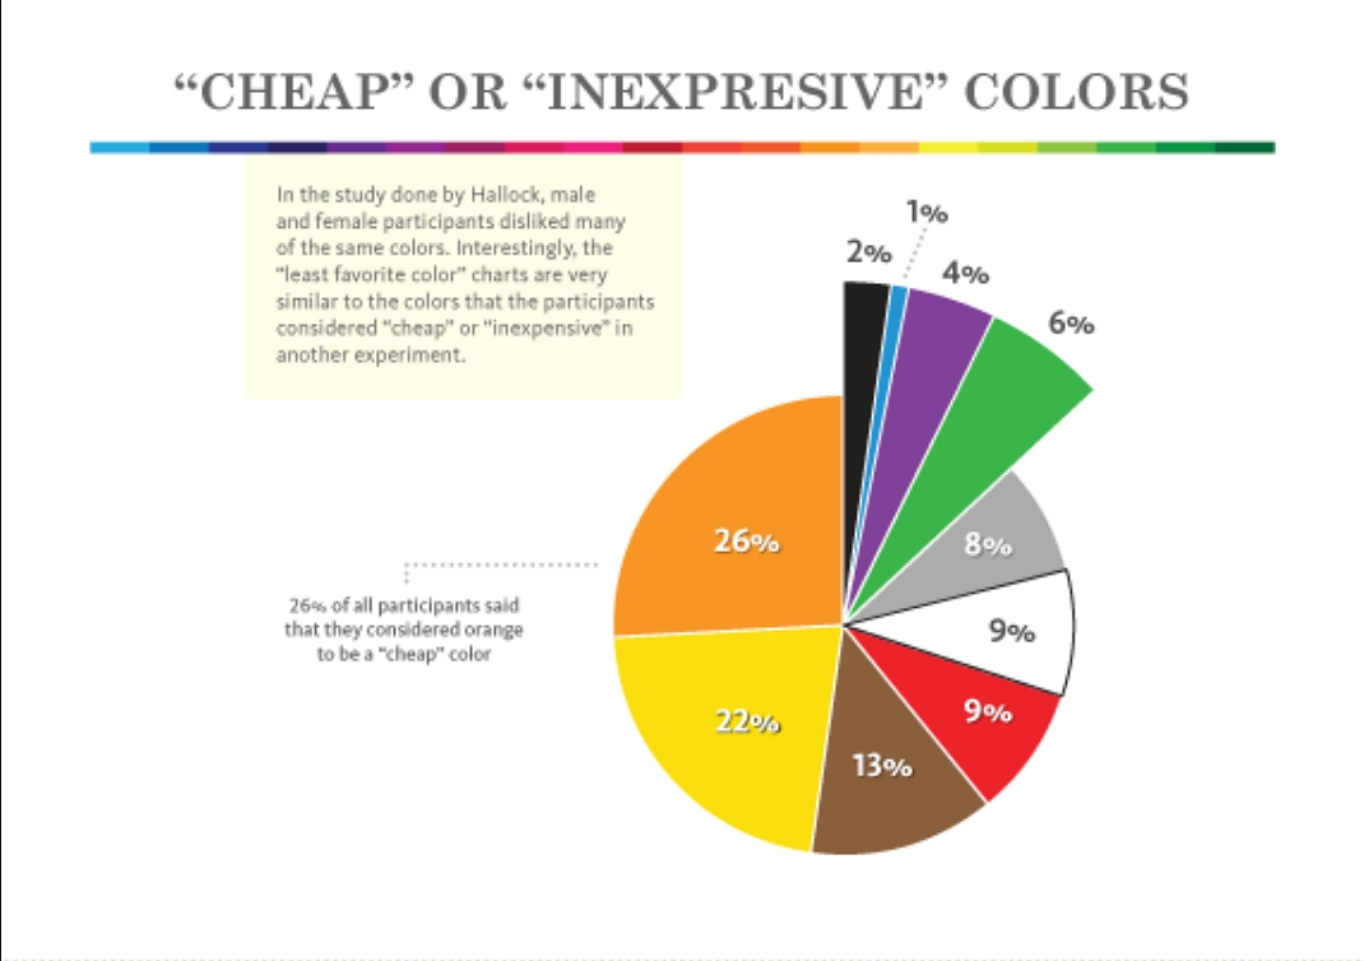 Cheap or inexpresive colors